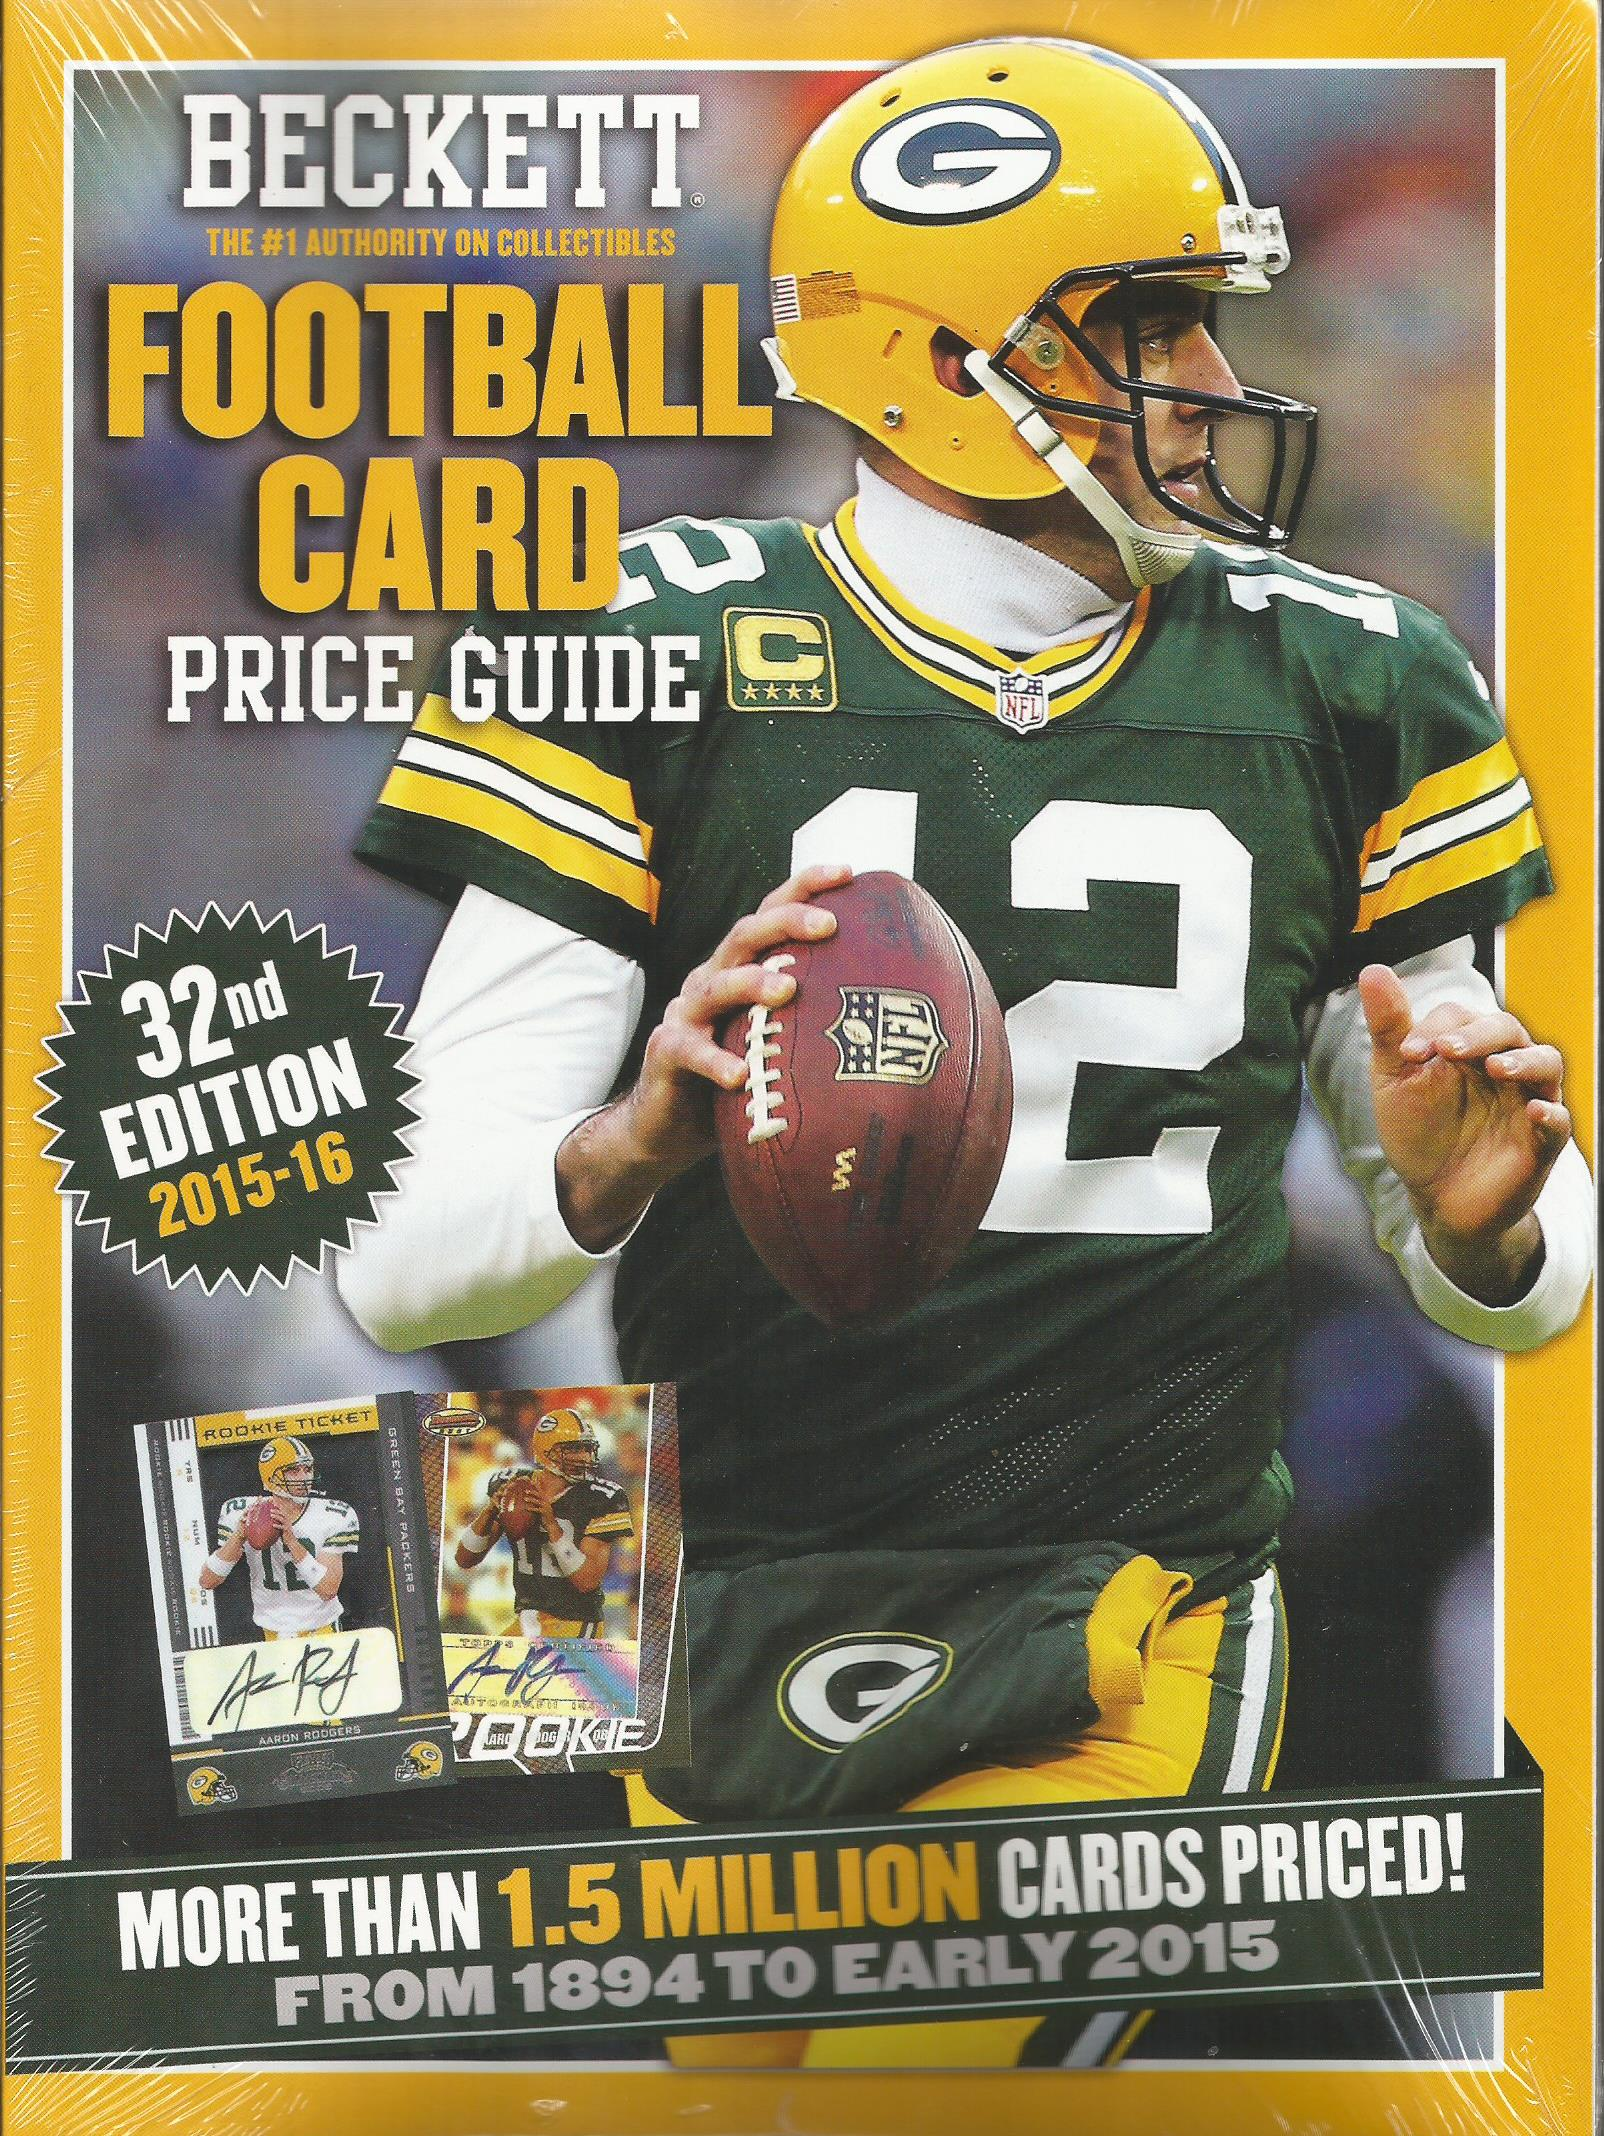 2015 2016 Beckett Annual Football Card Price Guide #32 (Aaron Rodgers on cover) (Brand new as of Sept 2015) (Cover Price $39.95 > SALE PRICE $37.95)